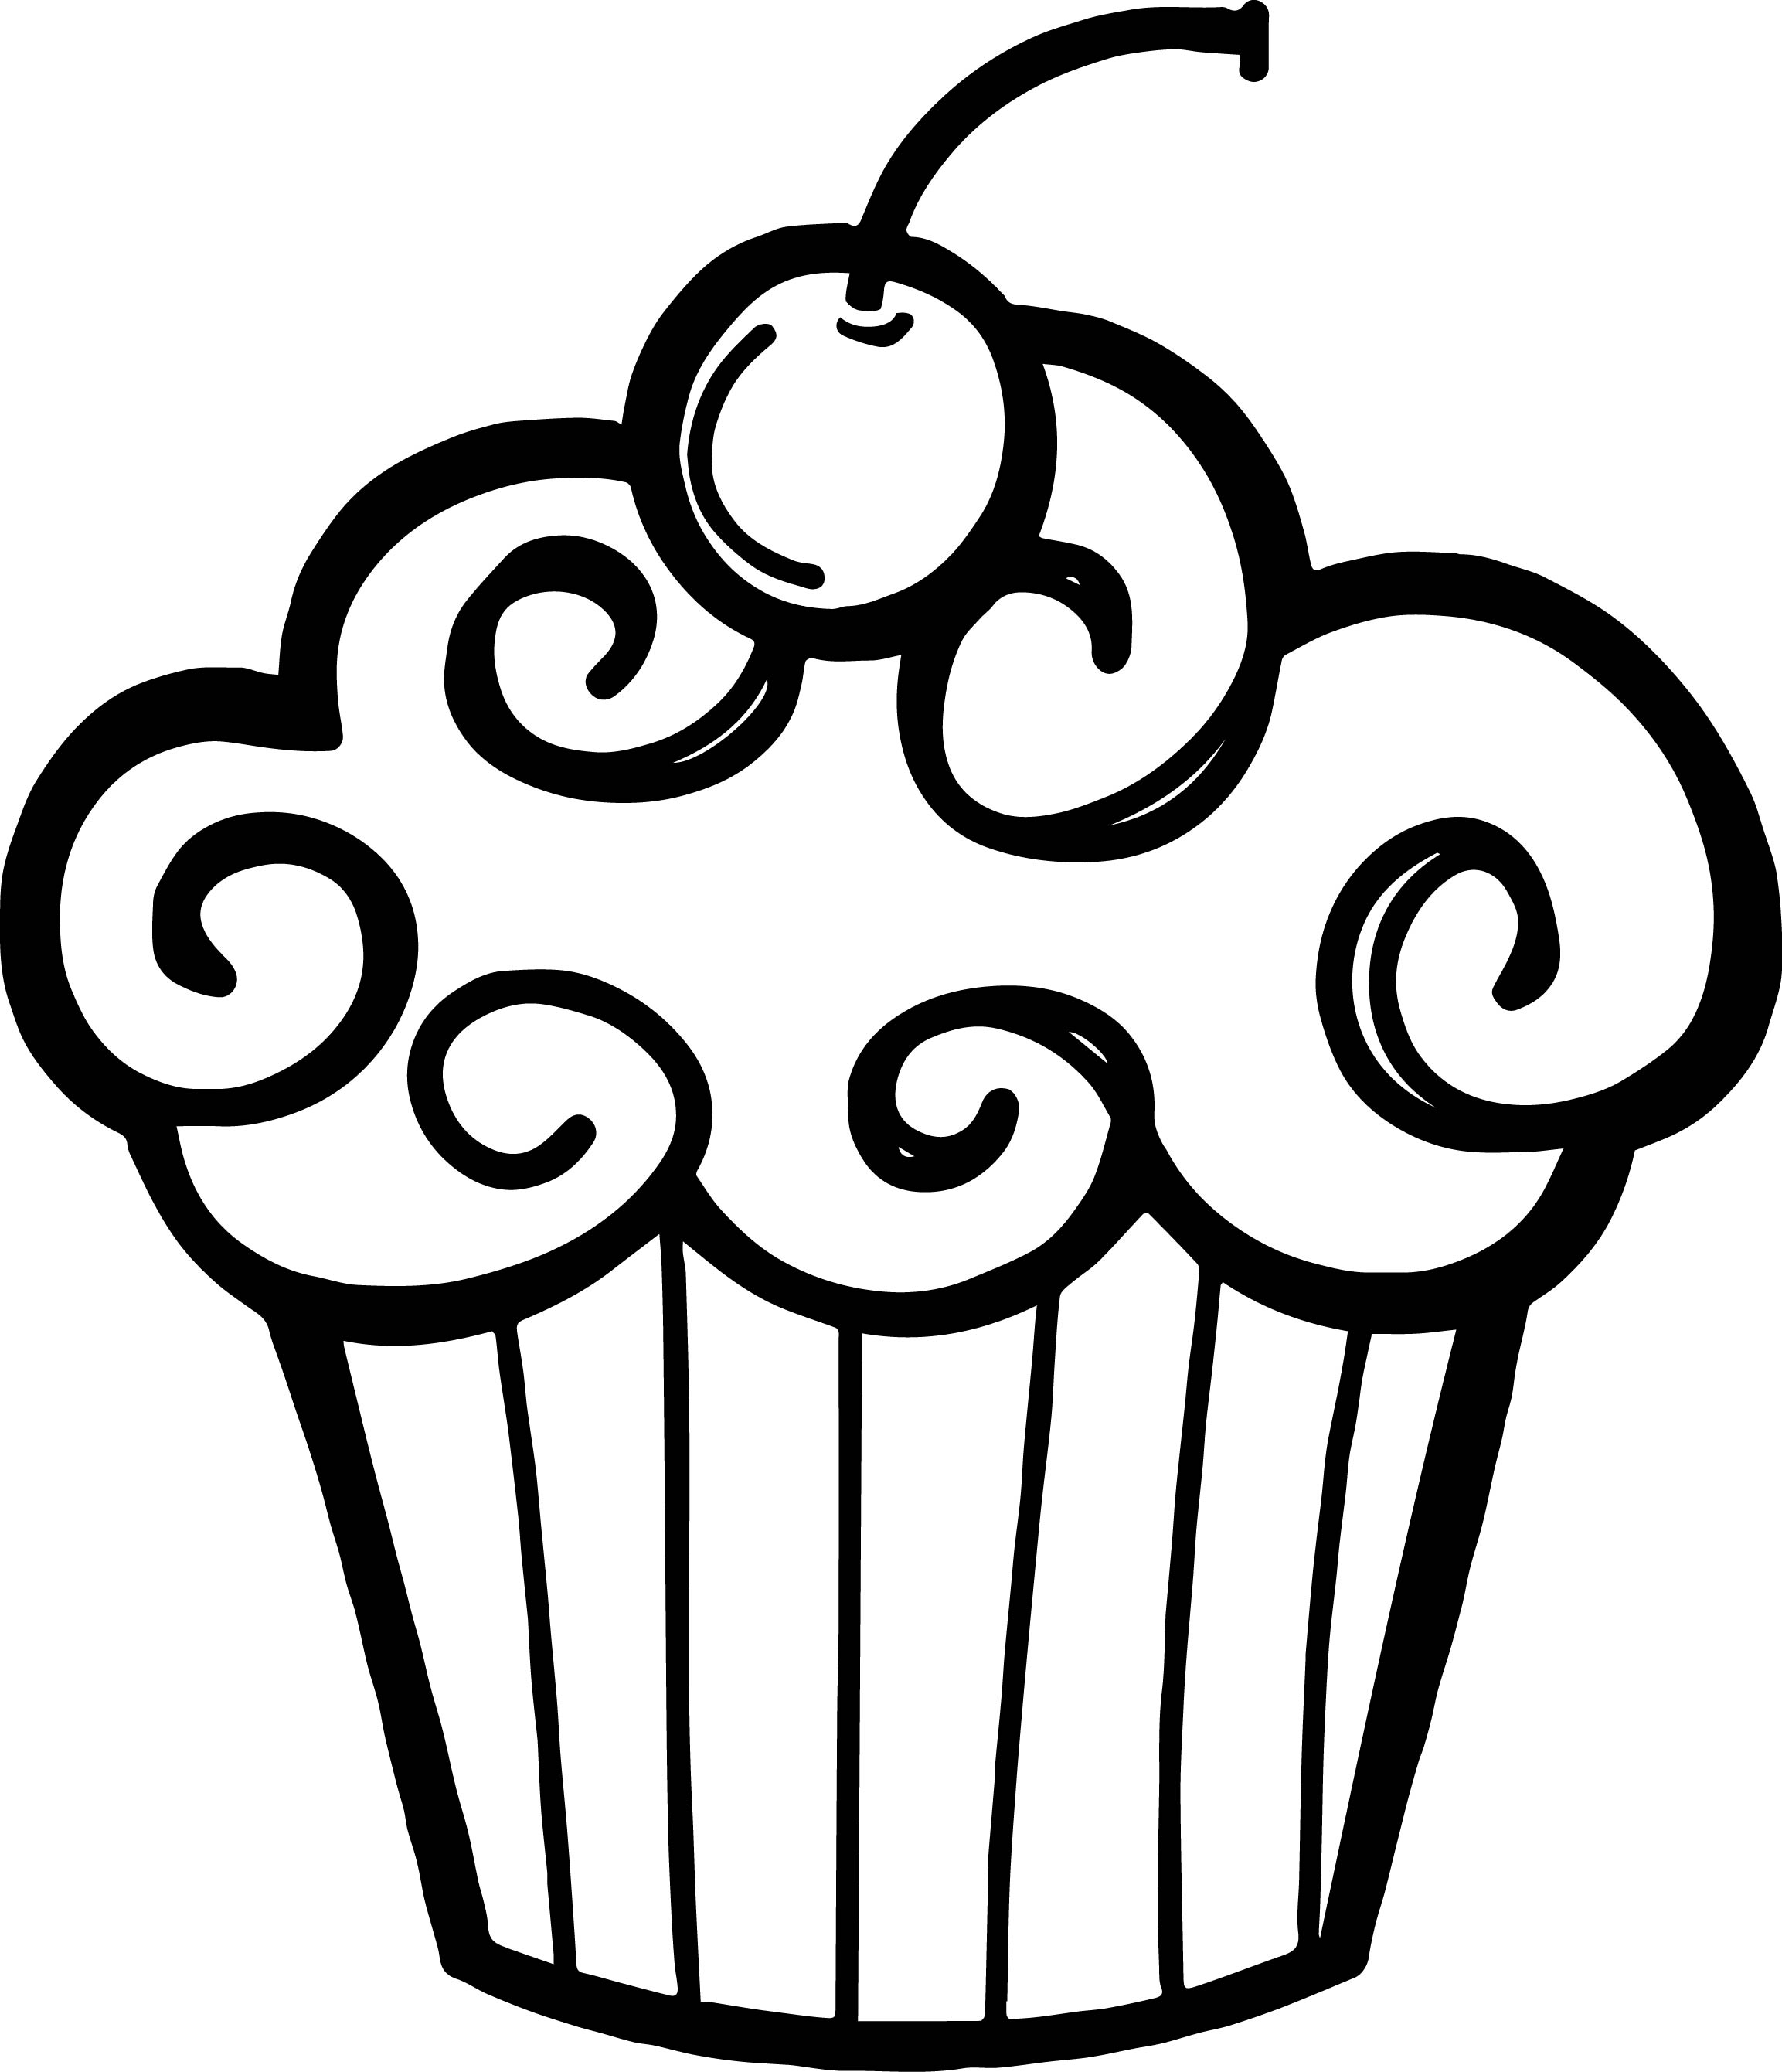 cupcake silhouette cupcake silhouette clipart best cupcake silhouette